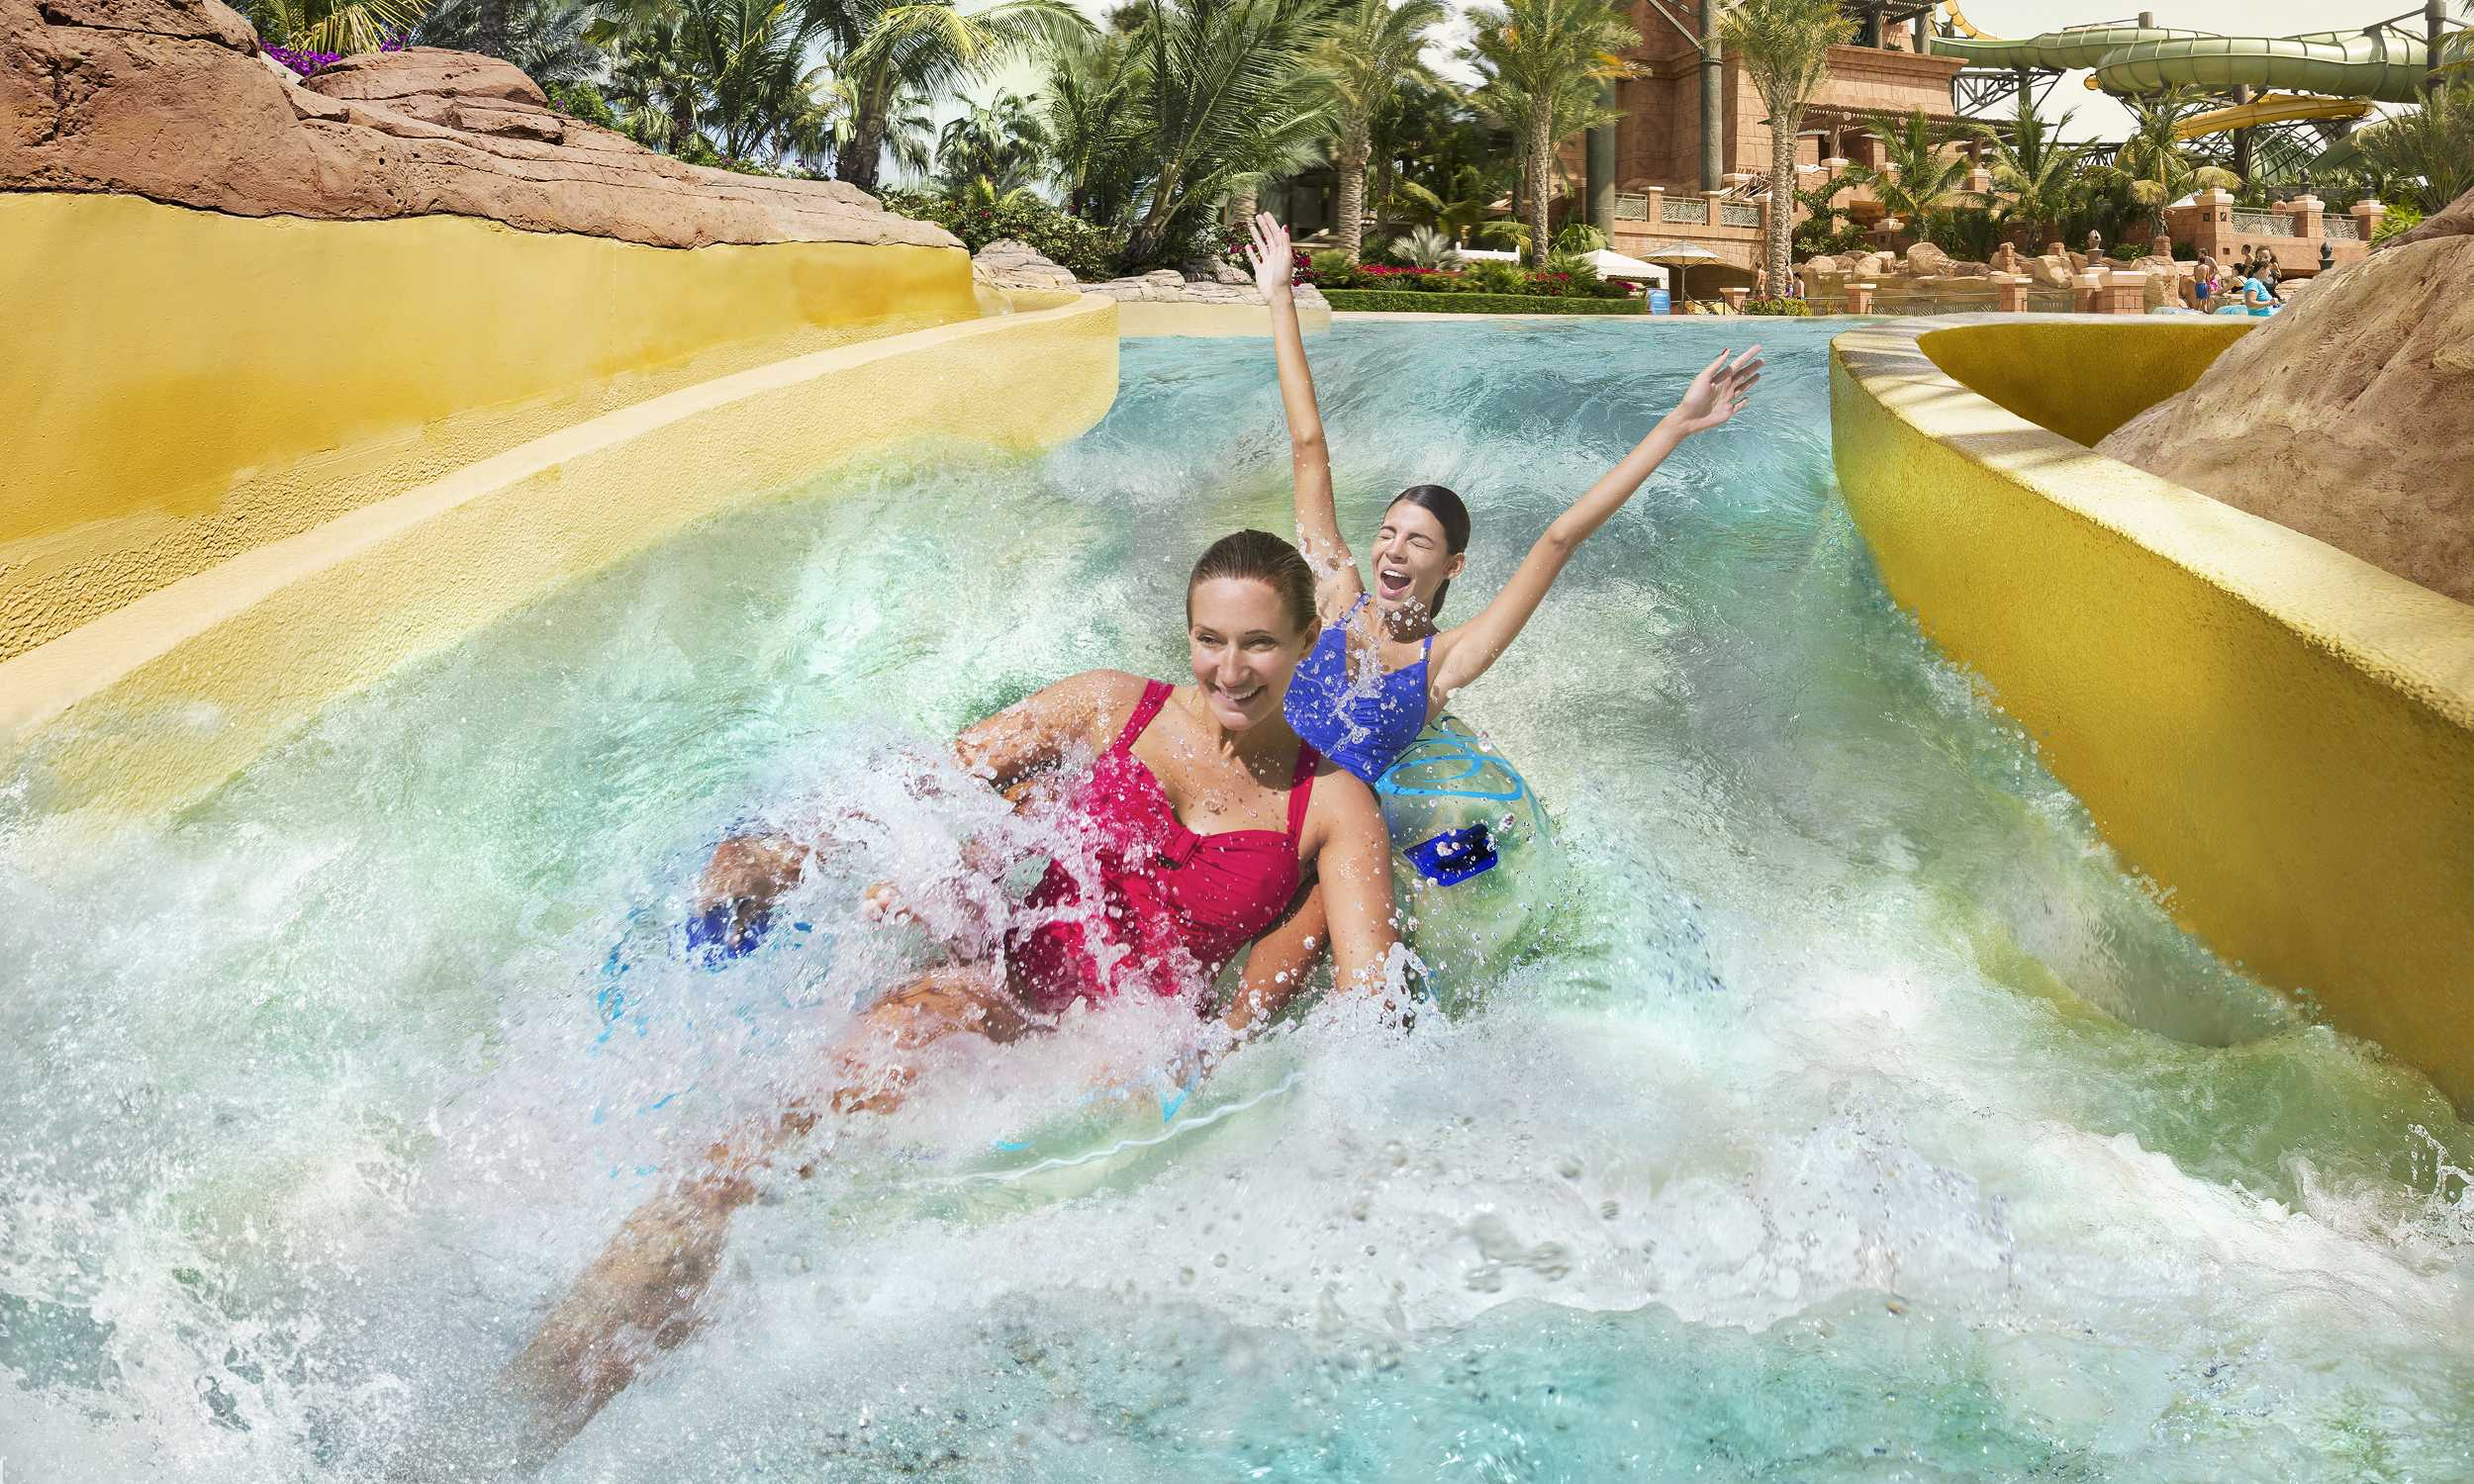 original_marine_and_waterpark_aquaventure_waterpark_02_08_2015_4441ext